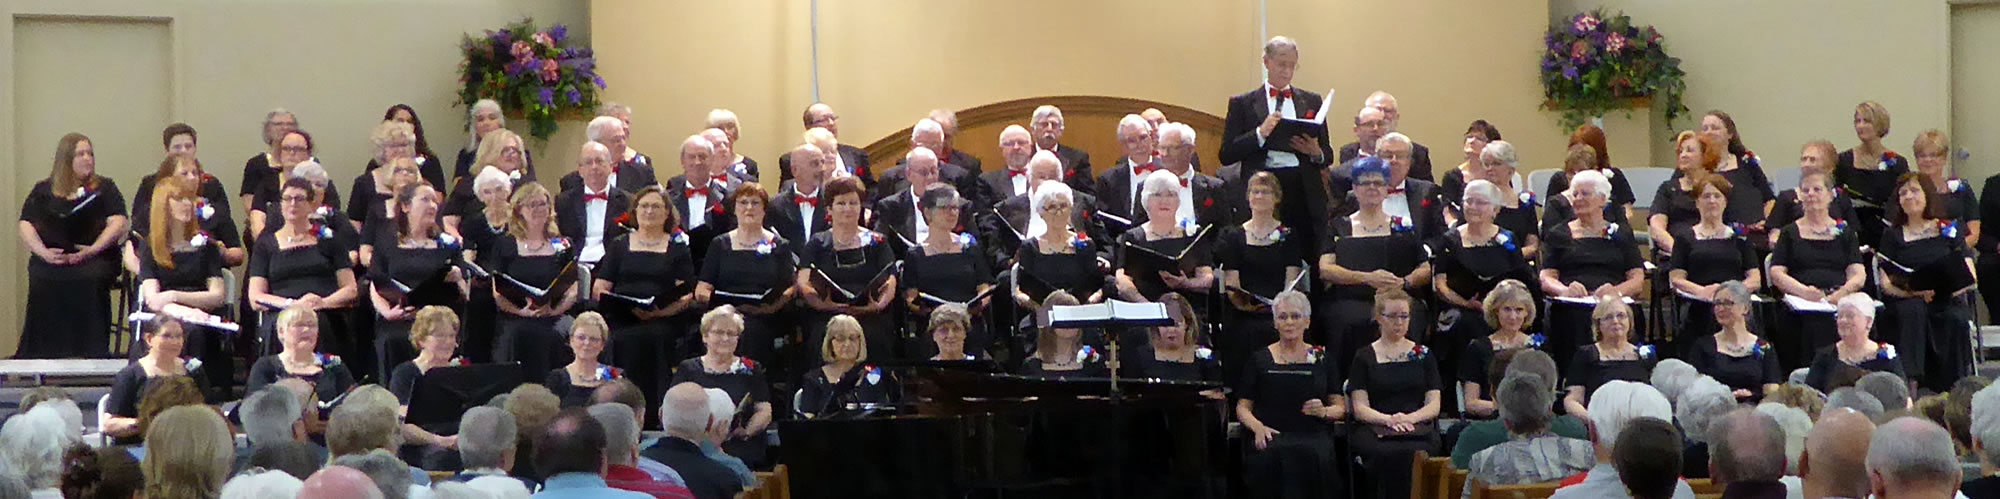 Georgetown Choral Society Performance, Spring 2018